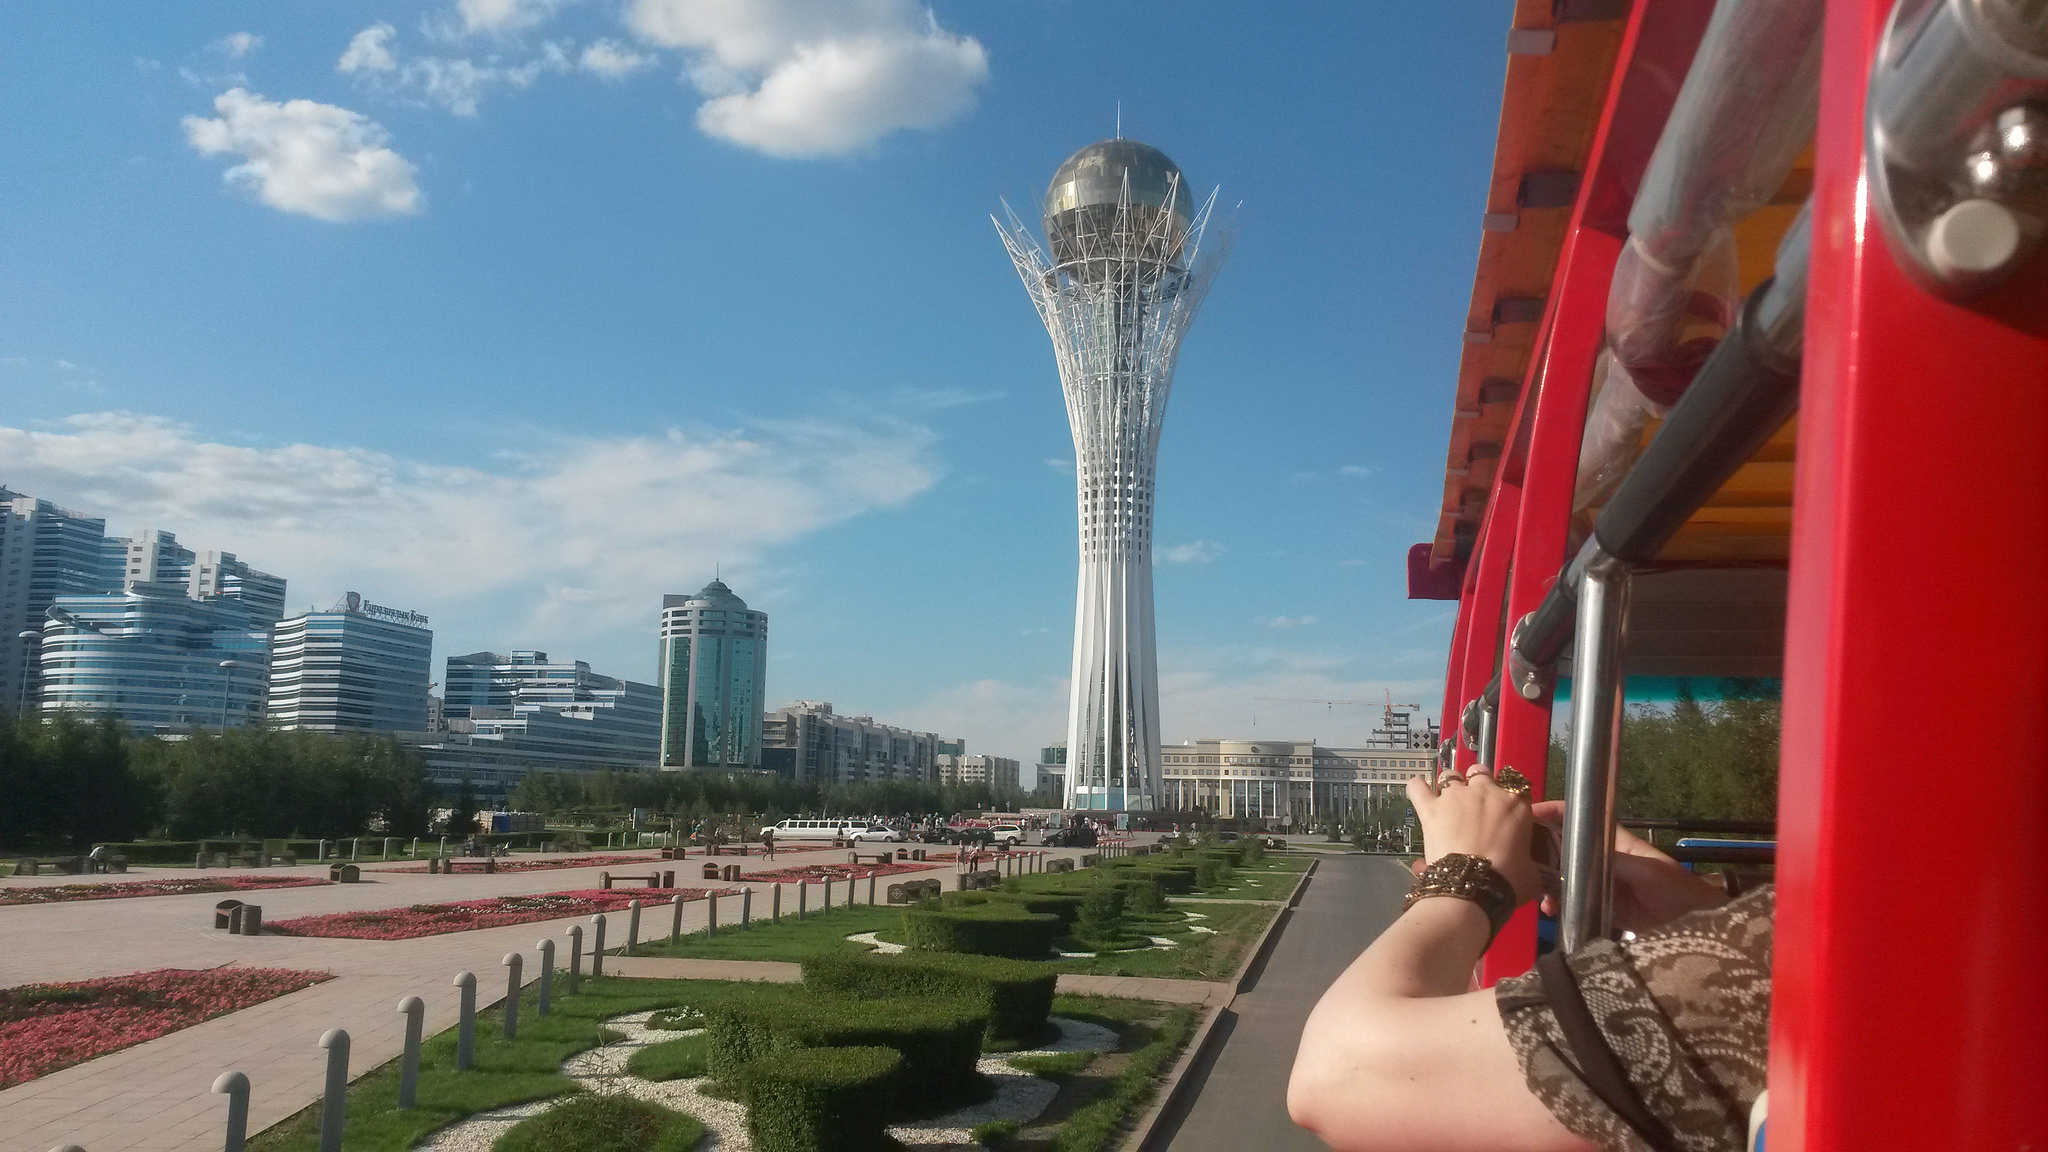 Seeing the weird and wonderful structures of Astana is a travel experience I want to have in 2019. Image credit:    Alex J. Butler   /   Creative Commons